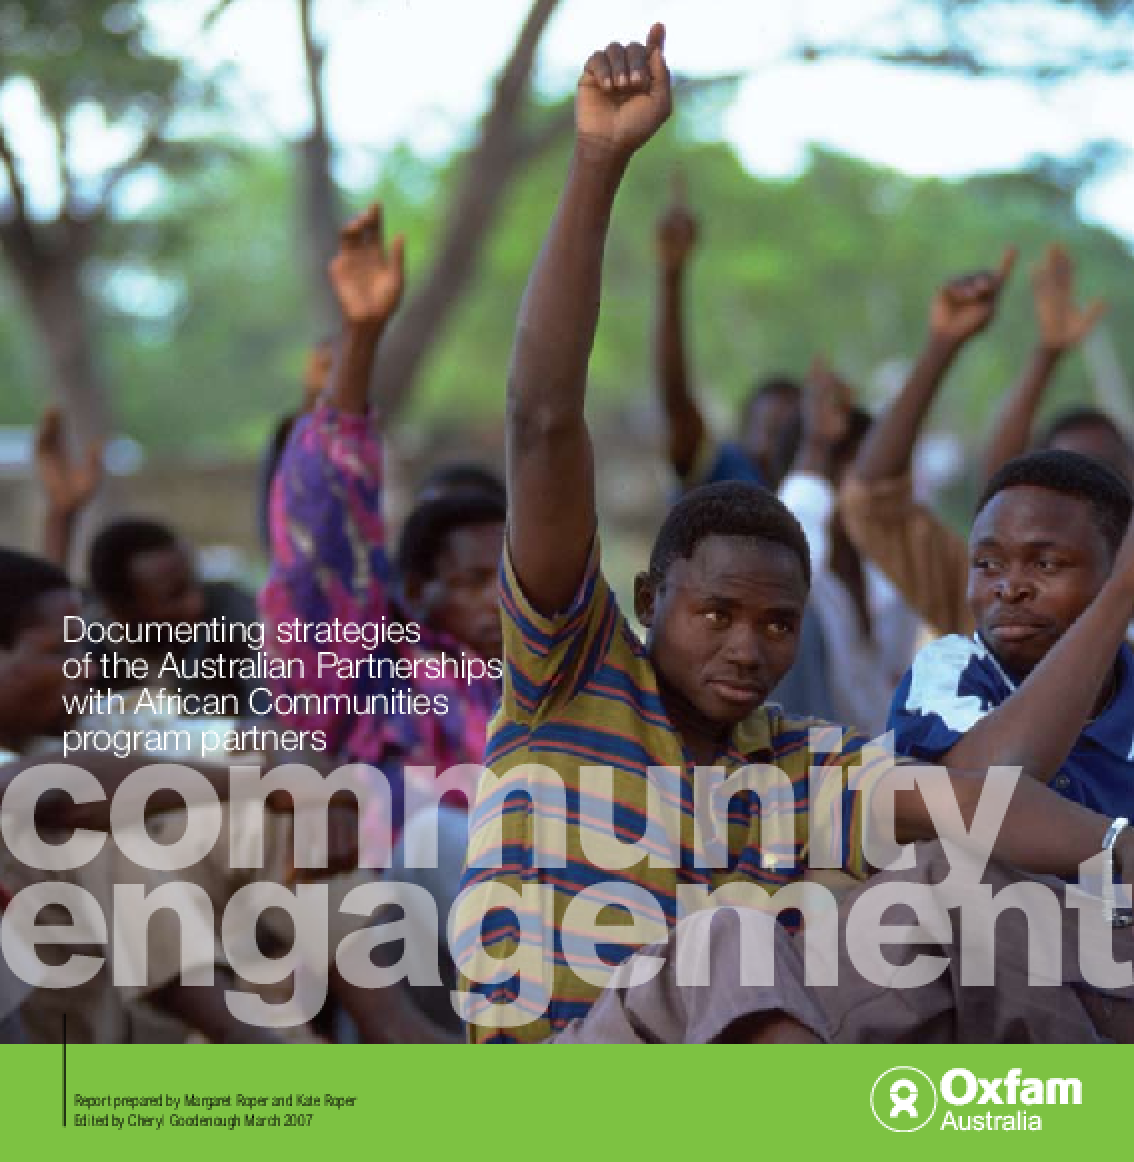 Community Engagement: Documenting strategies of the Australian Partnerships with African Communities Program partners